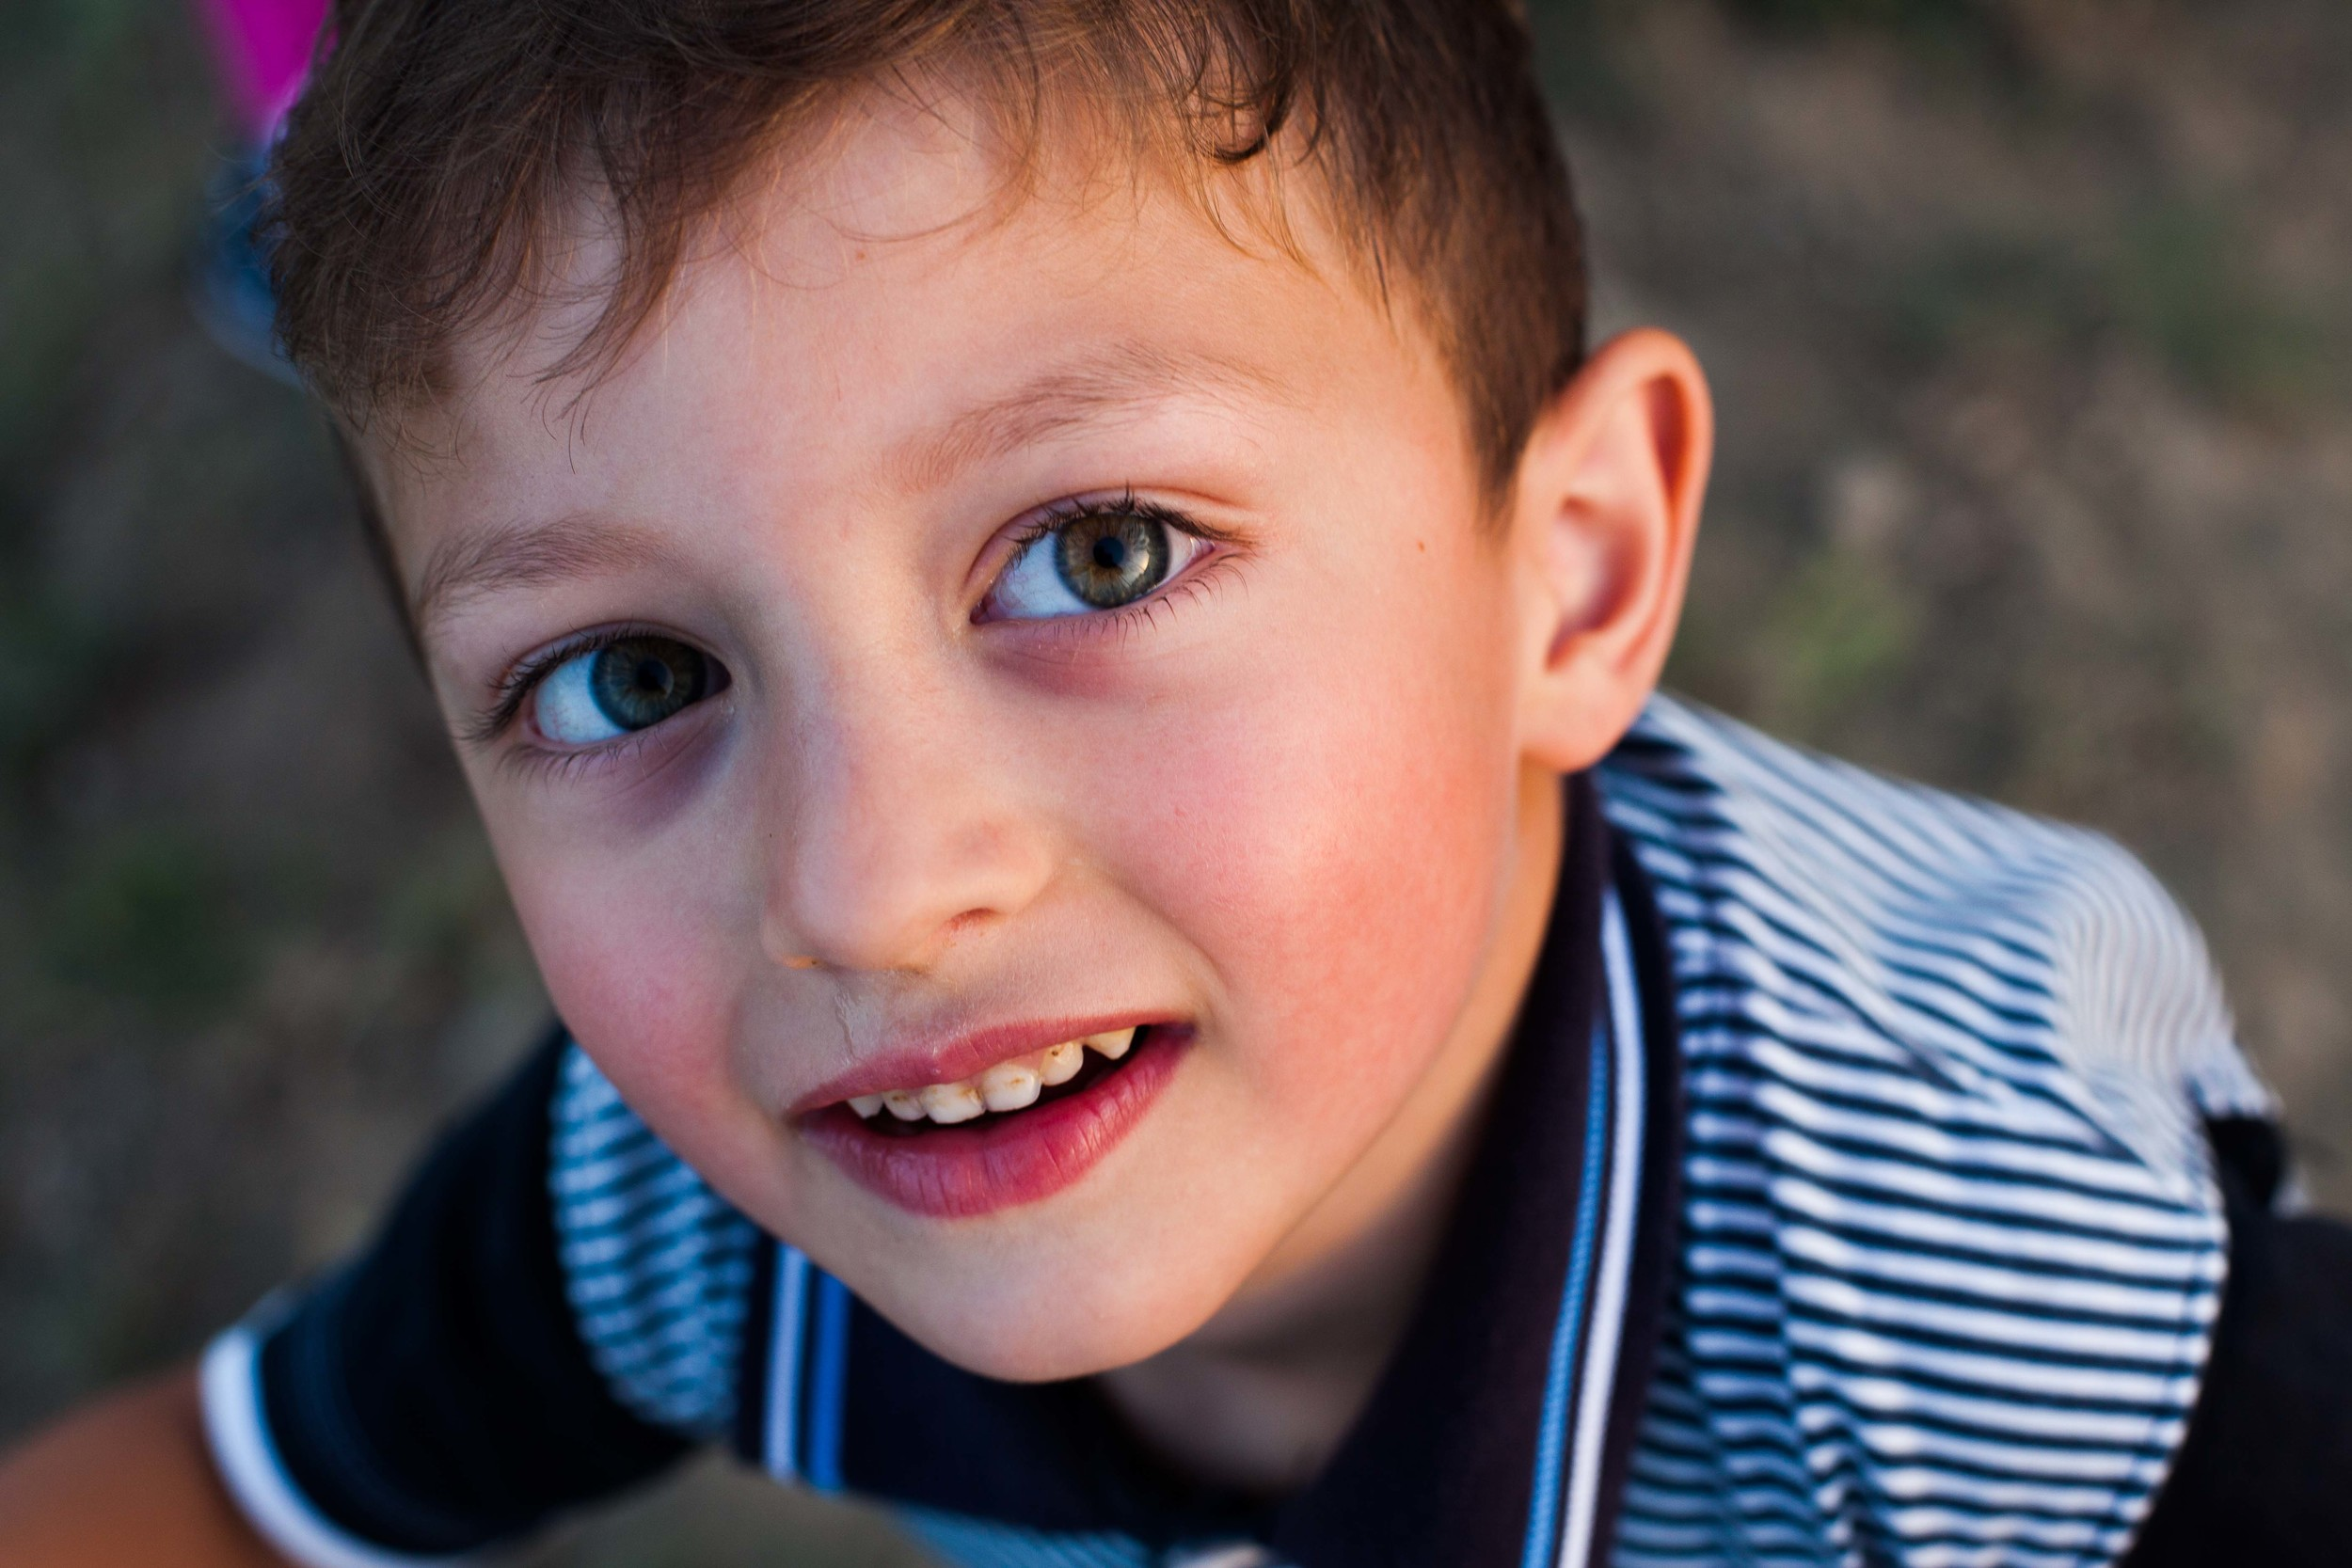 Hamltik, a young boy, stops for a portrait in between playing with his sister and his neighbor.